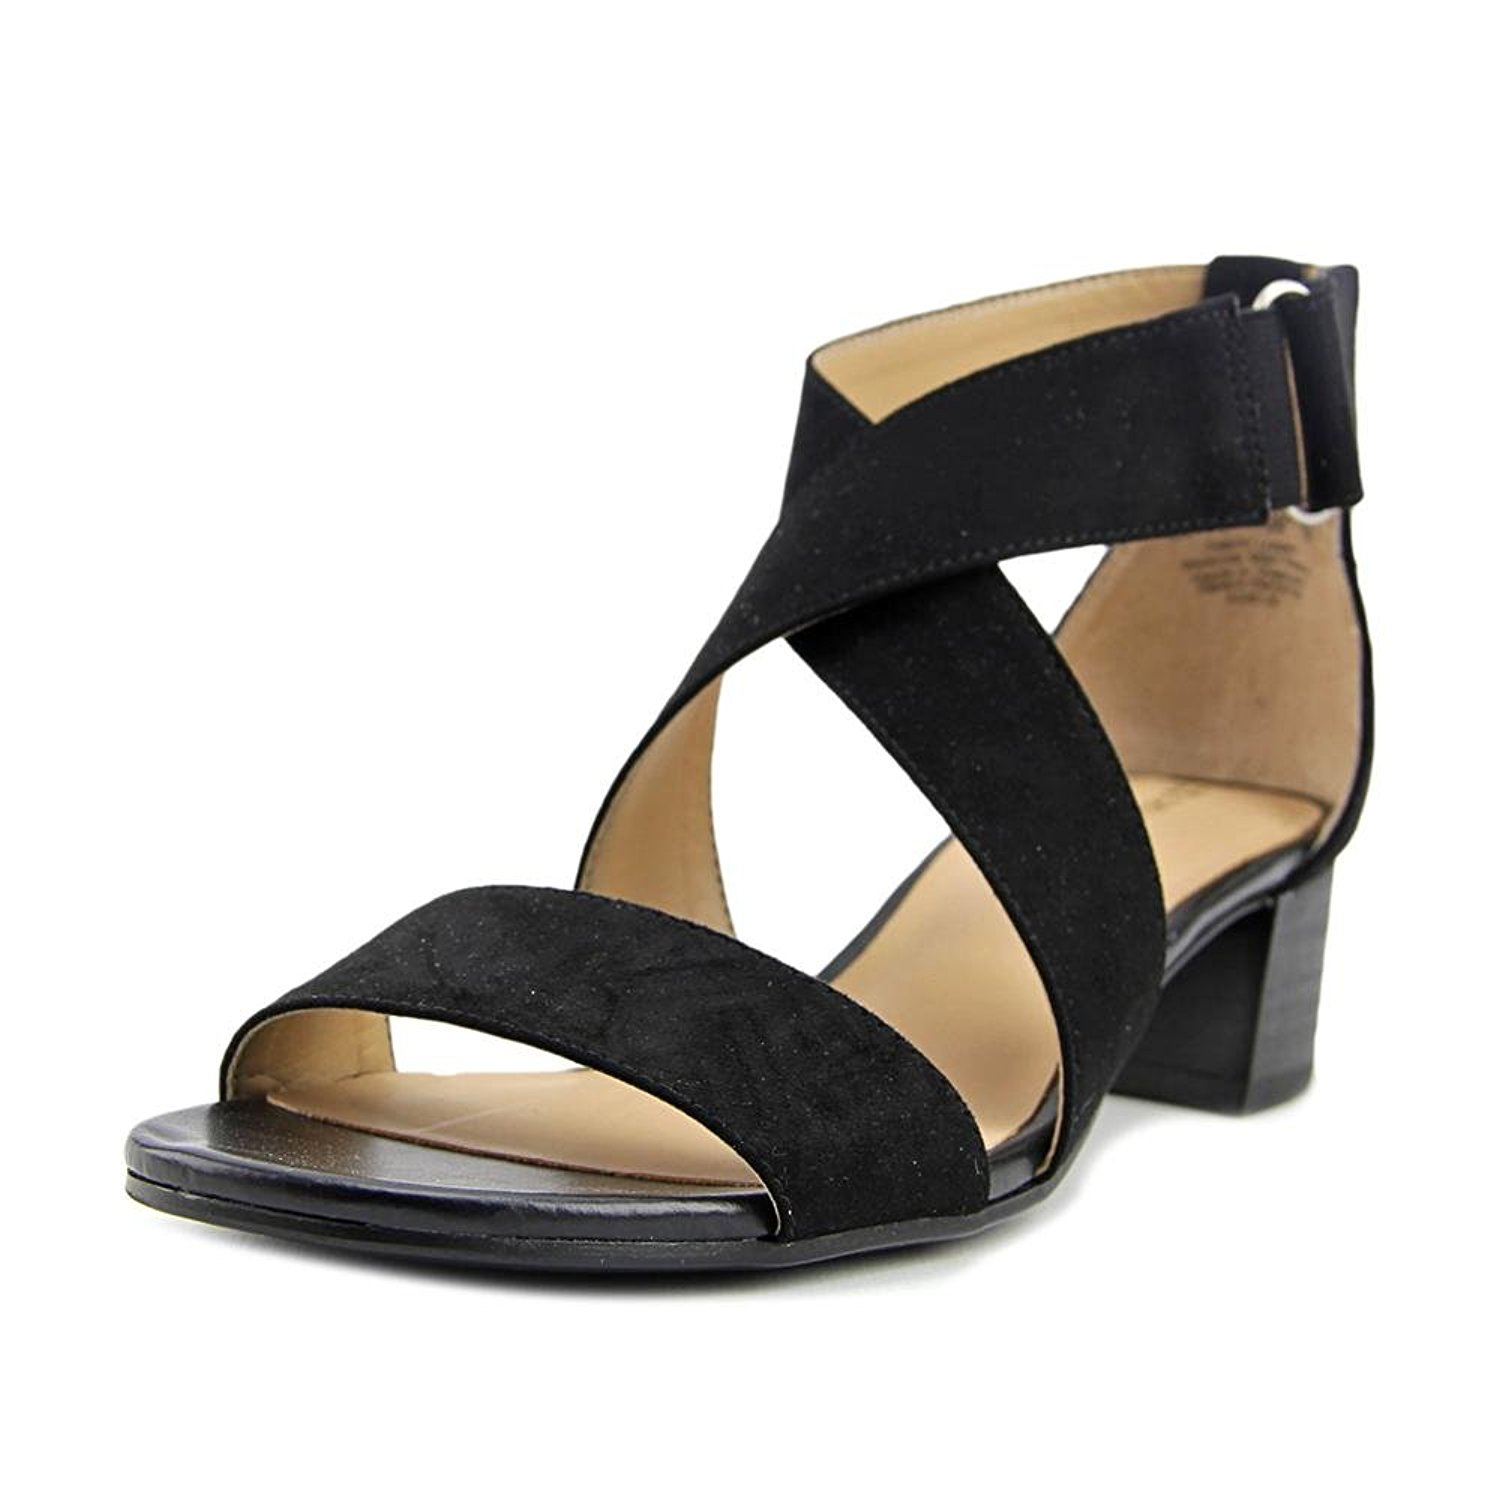 Naturalizer Womens Adele Fabric Open Toe Casual Ankle Strap Sandals by Naturalizer